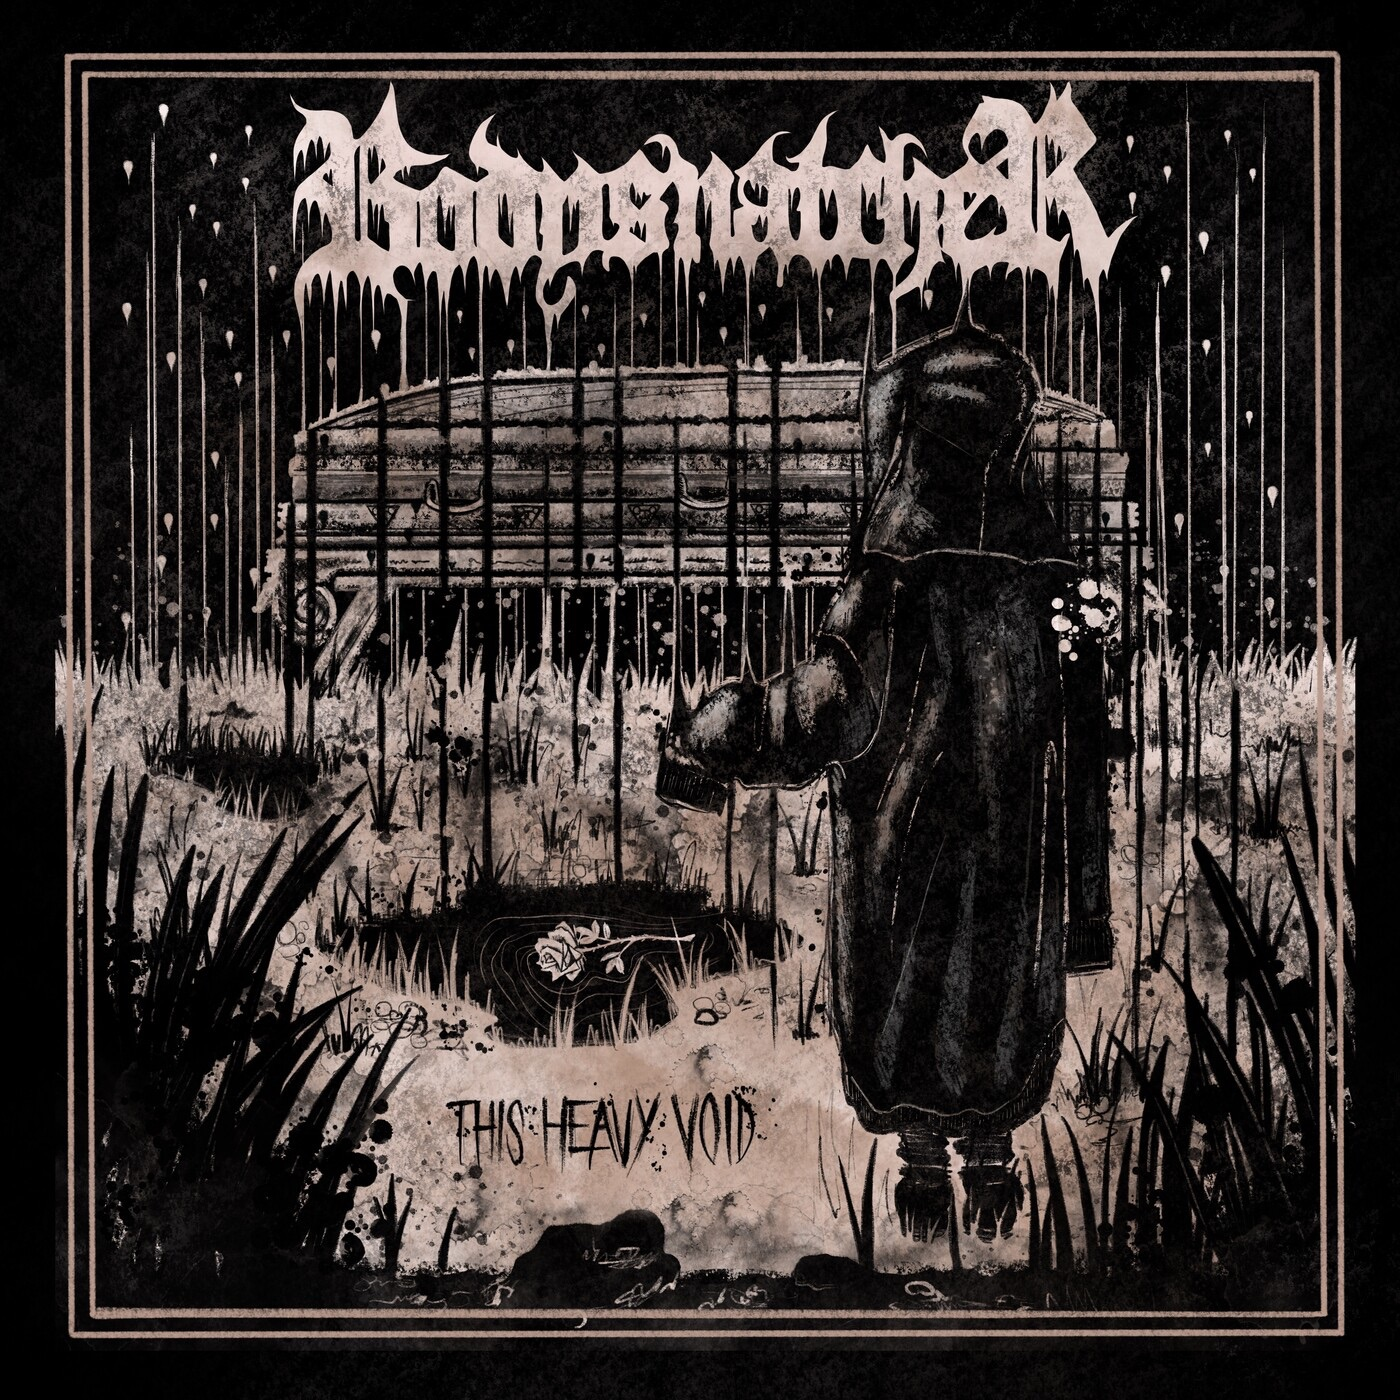 Bodysnatcher This Heavy Void